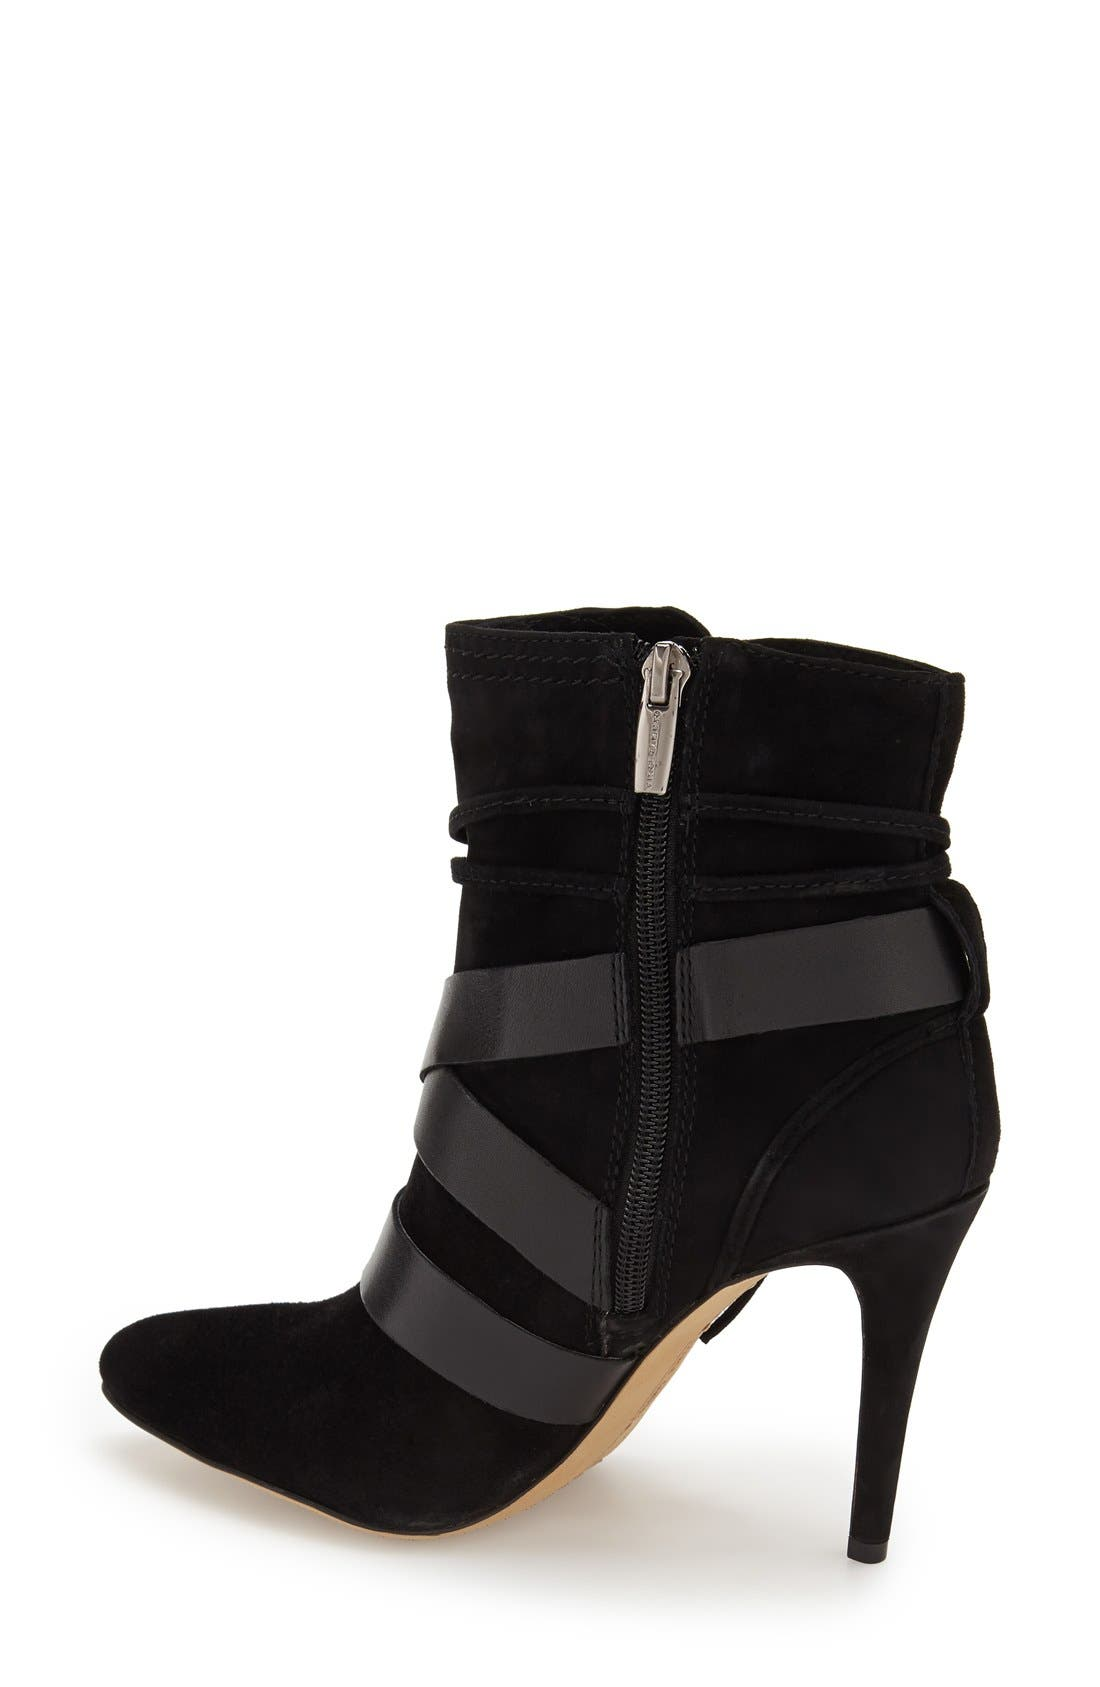 Alternate Image 2  - Vince Camuto 'Solter' Pointy Toe Bootie (Women)